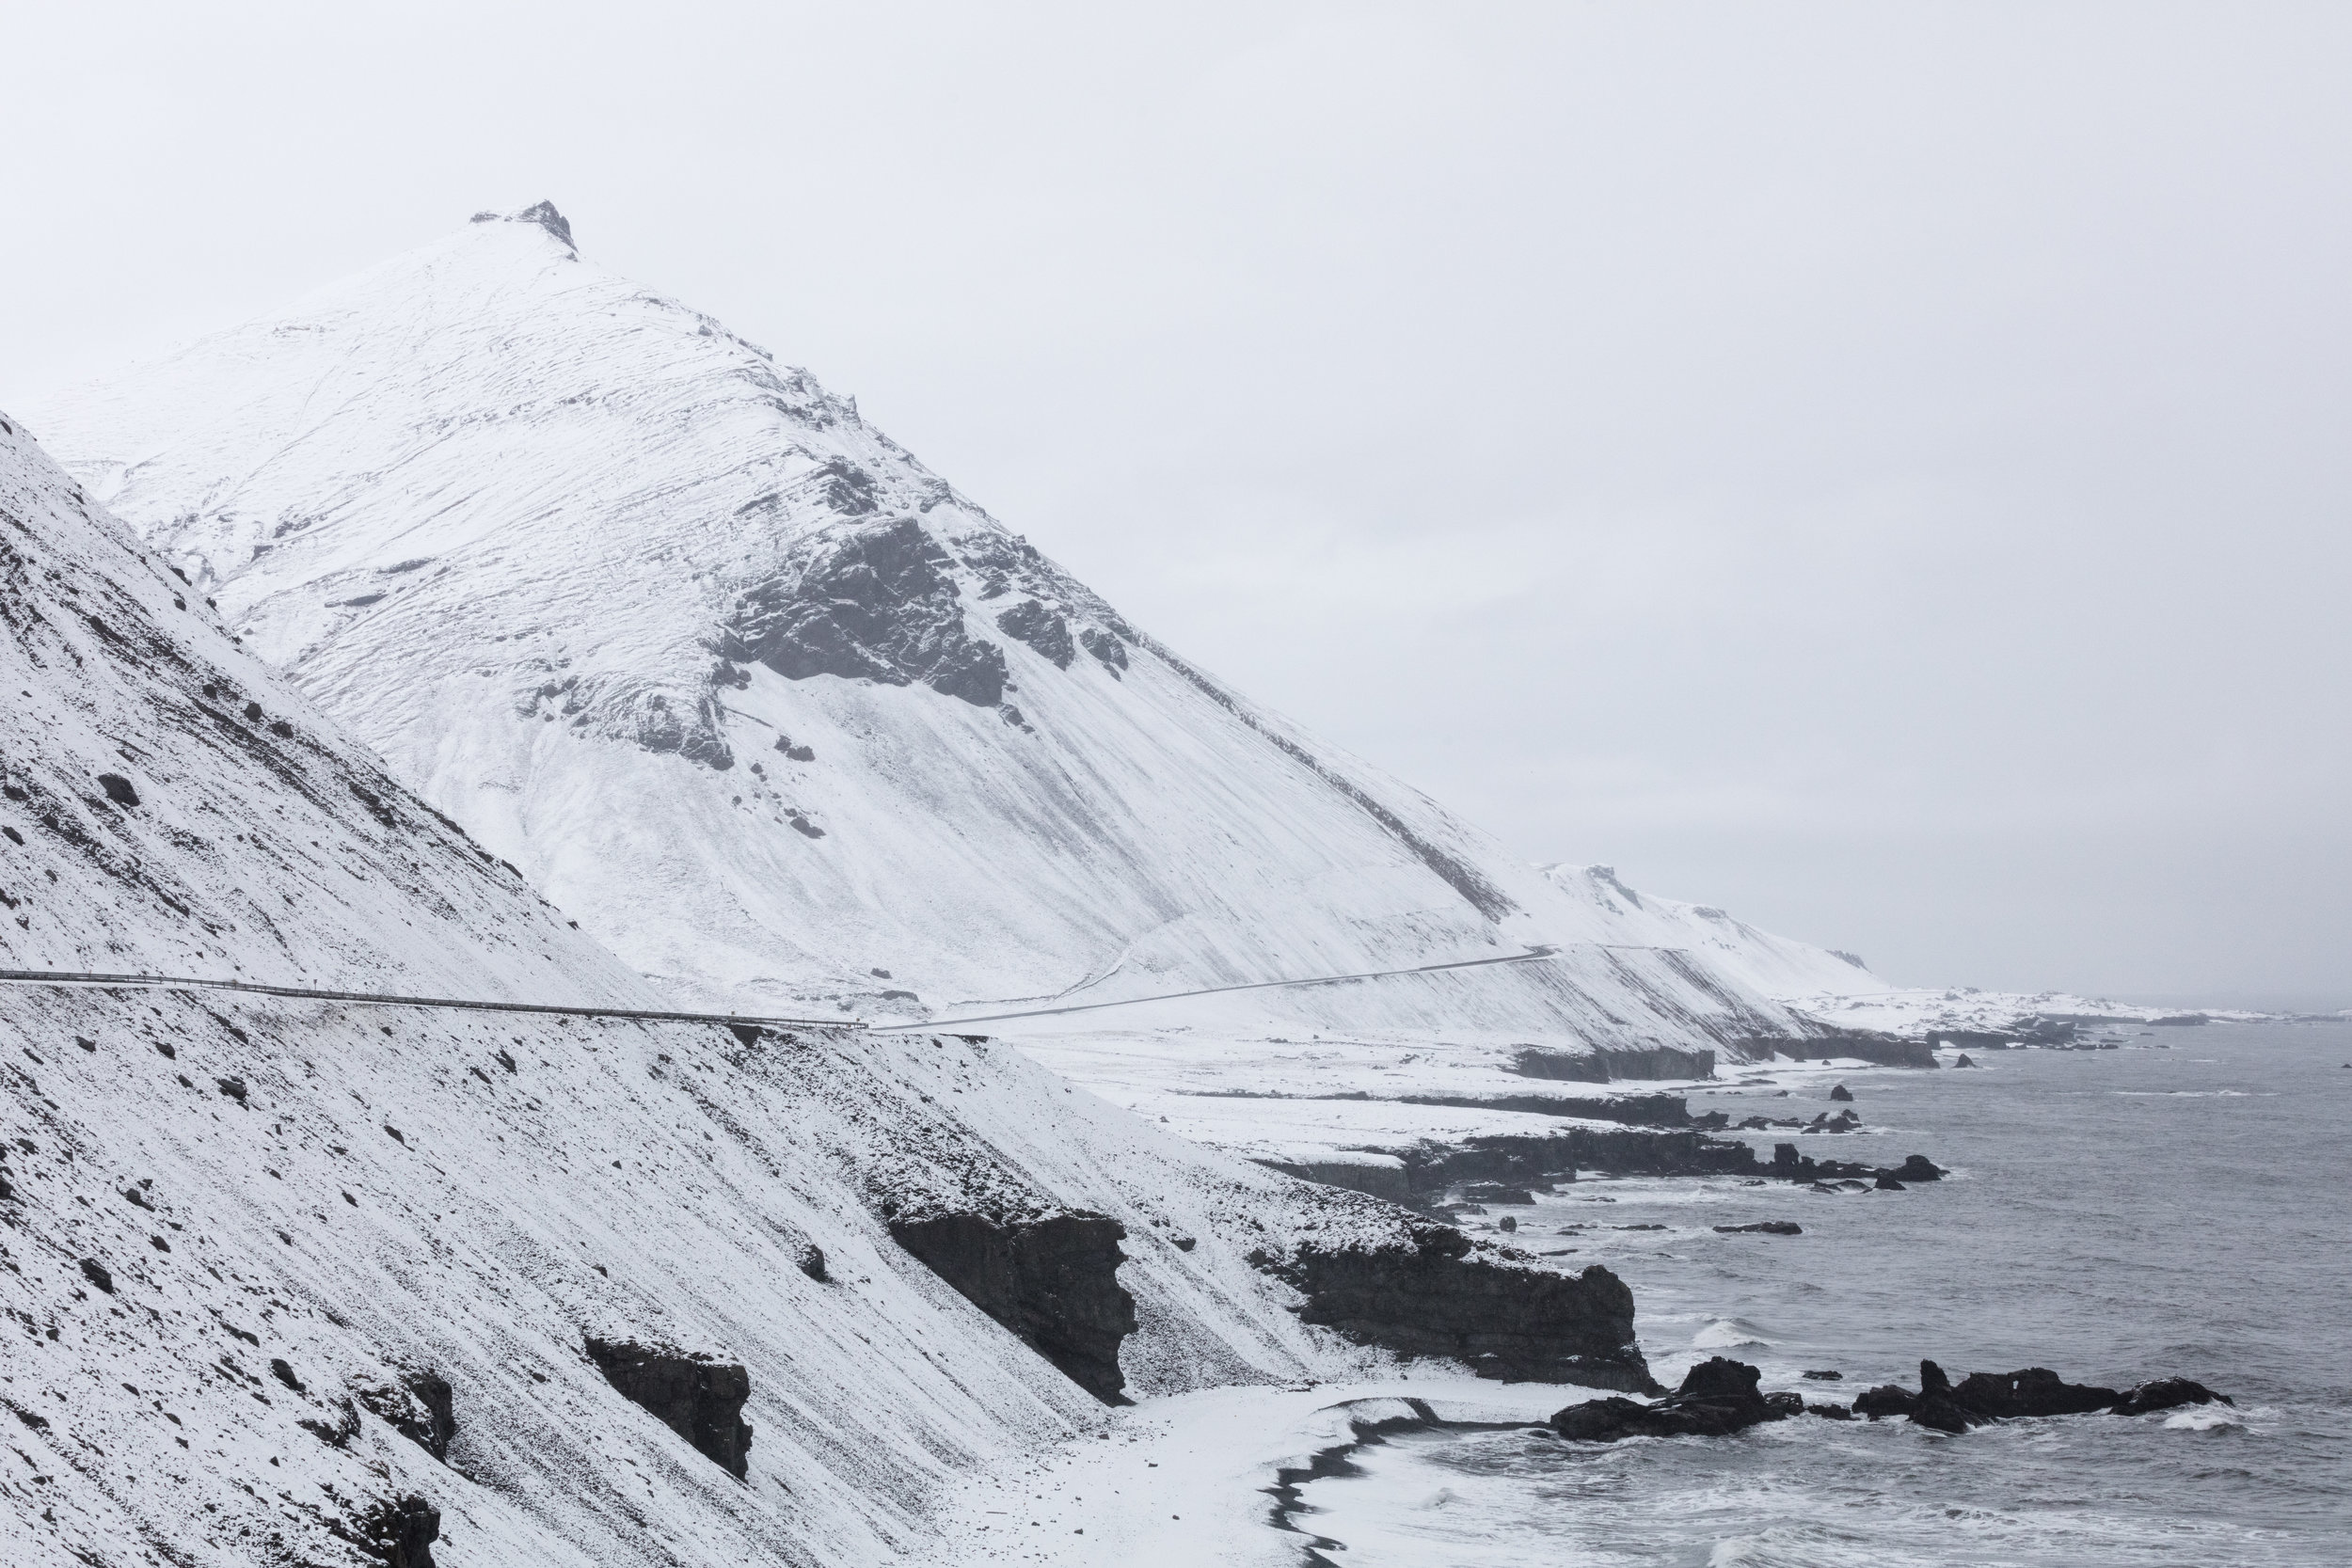 Iceland's East Fjords covered in snow | East Iceland - Faune